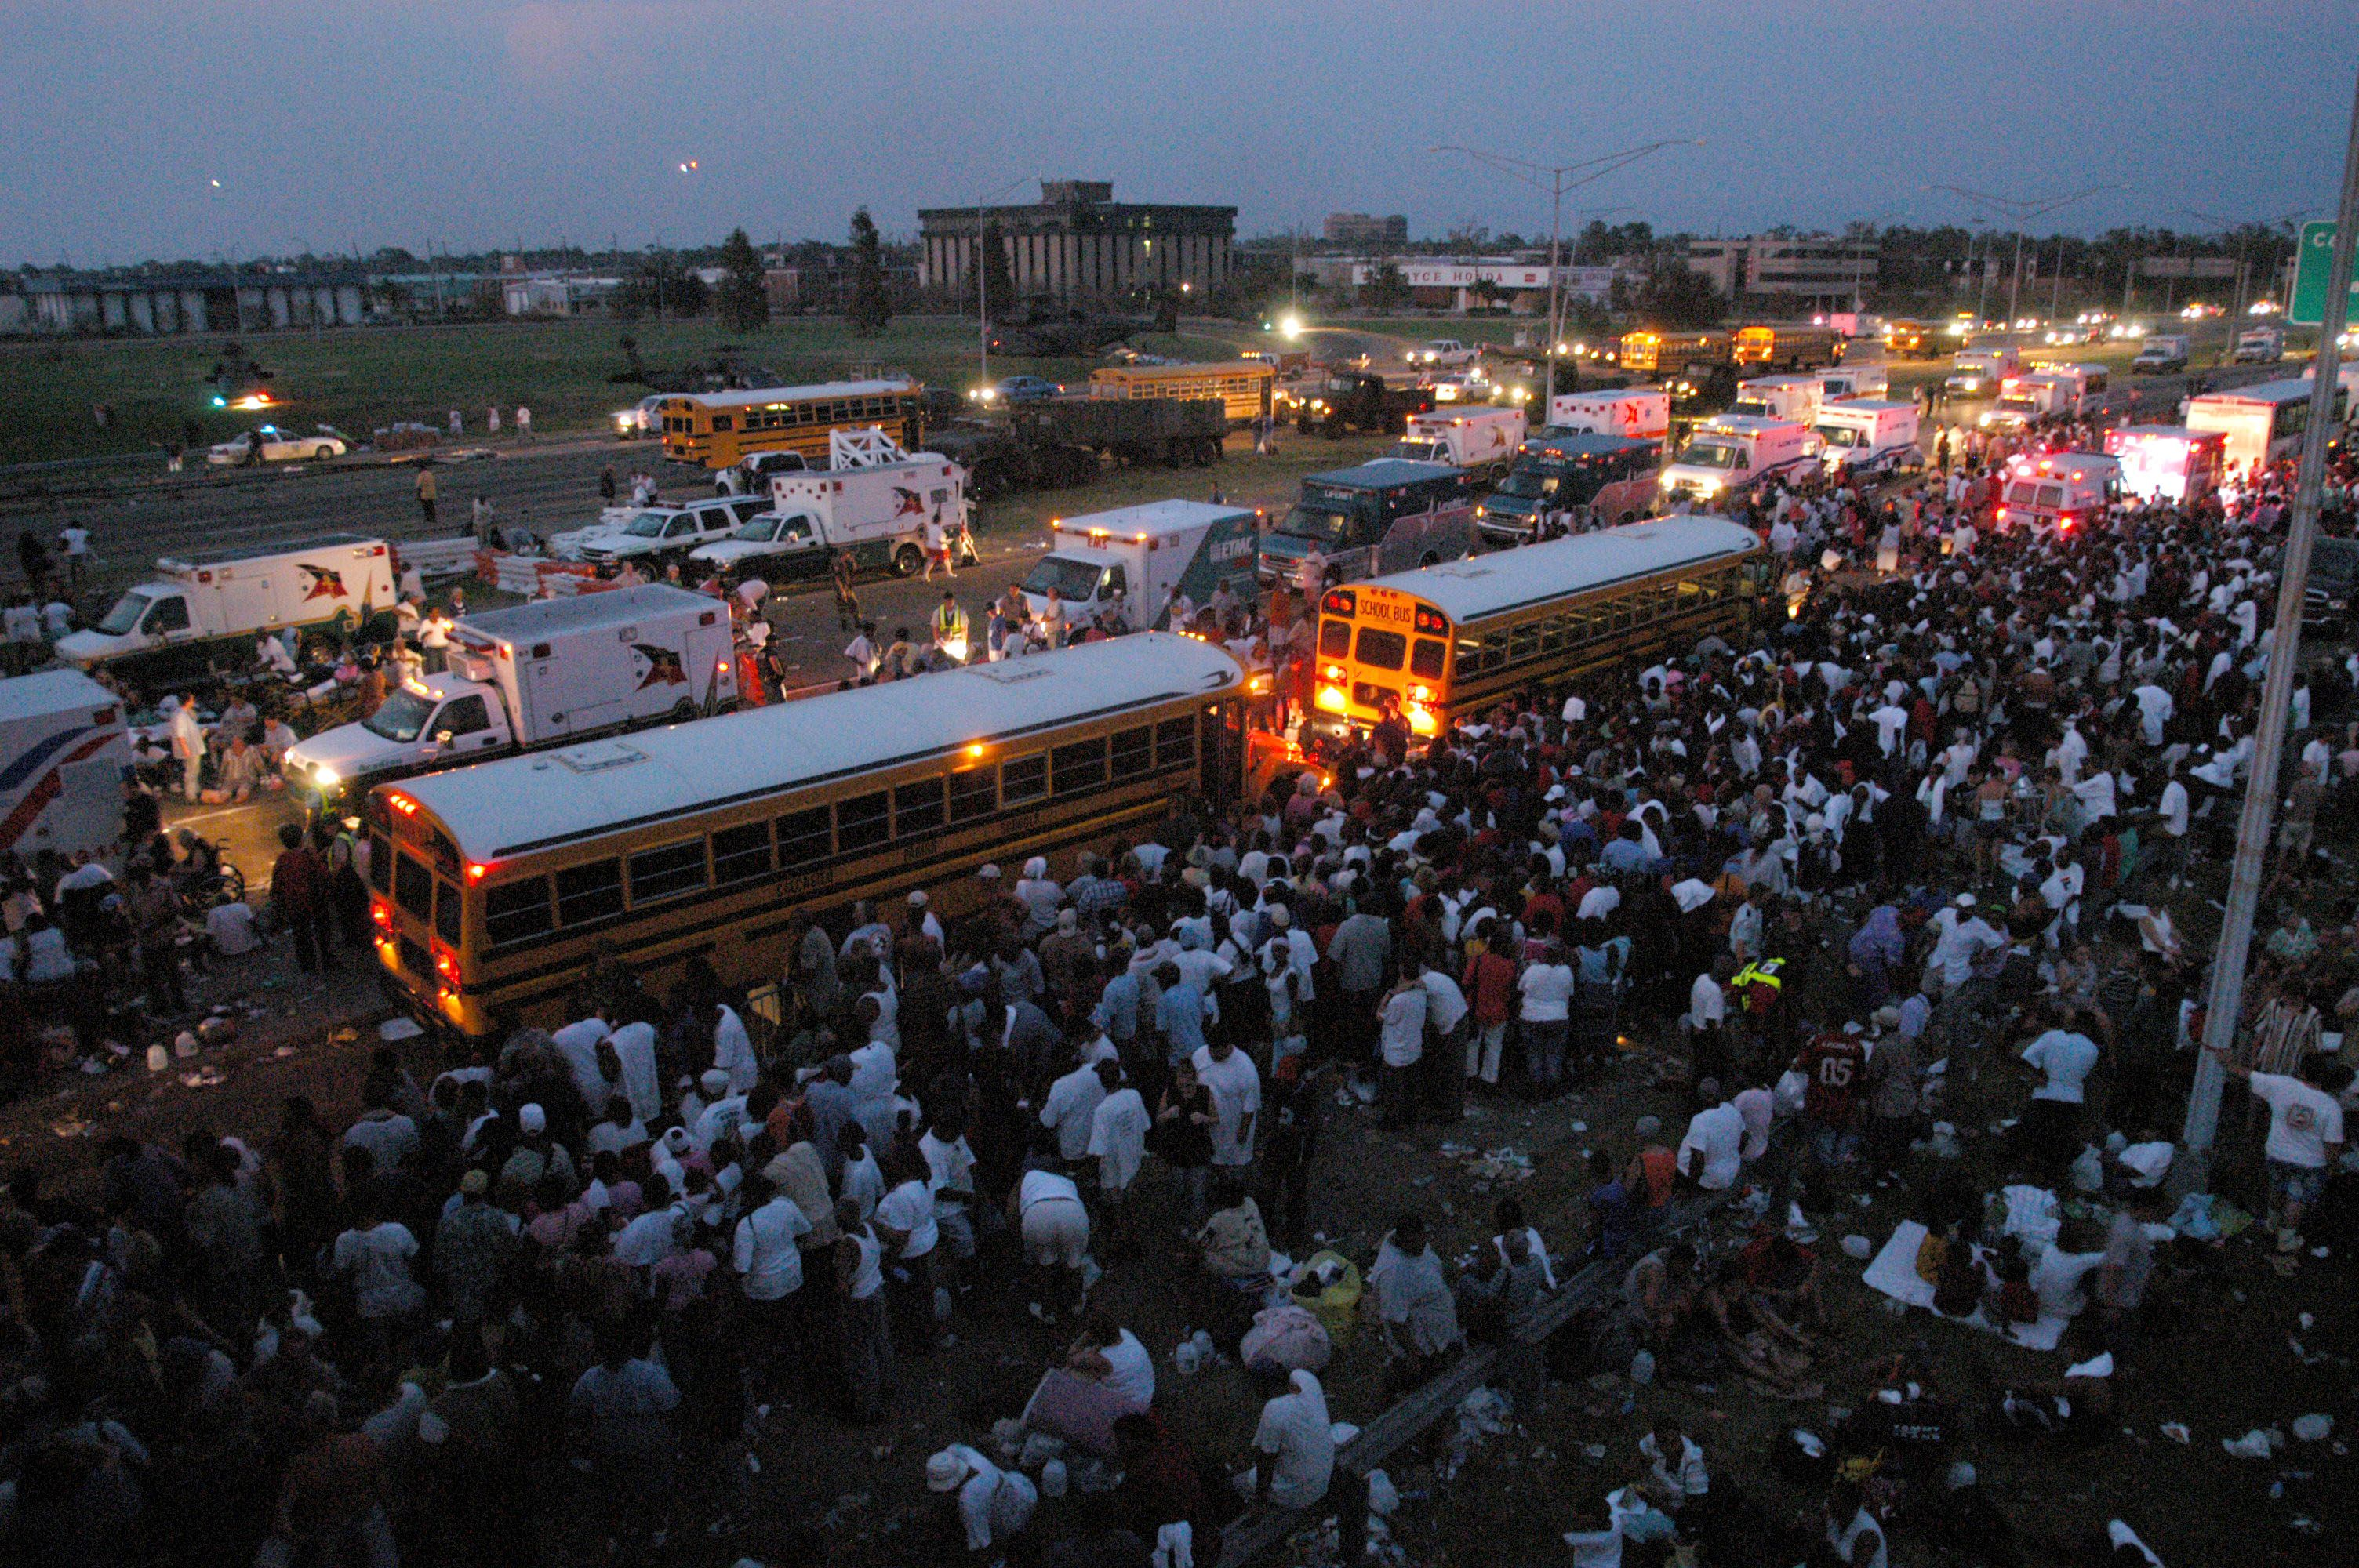 Rescue activities continue into the night at the main staging area at I-10 and Causeway, New Orleans - 31 AugHURRICANE KATRINA, AMERICA - 2005